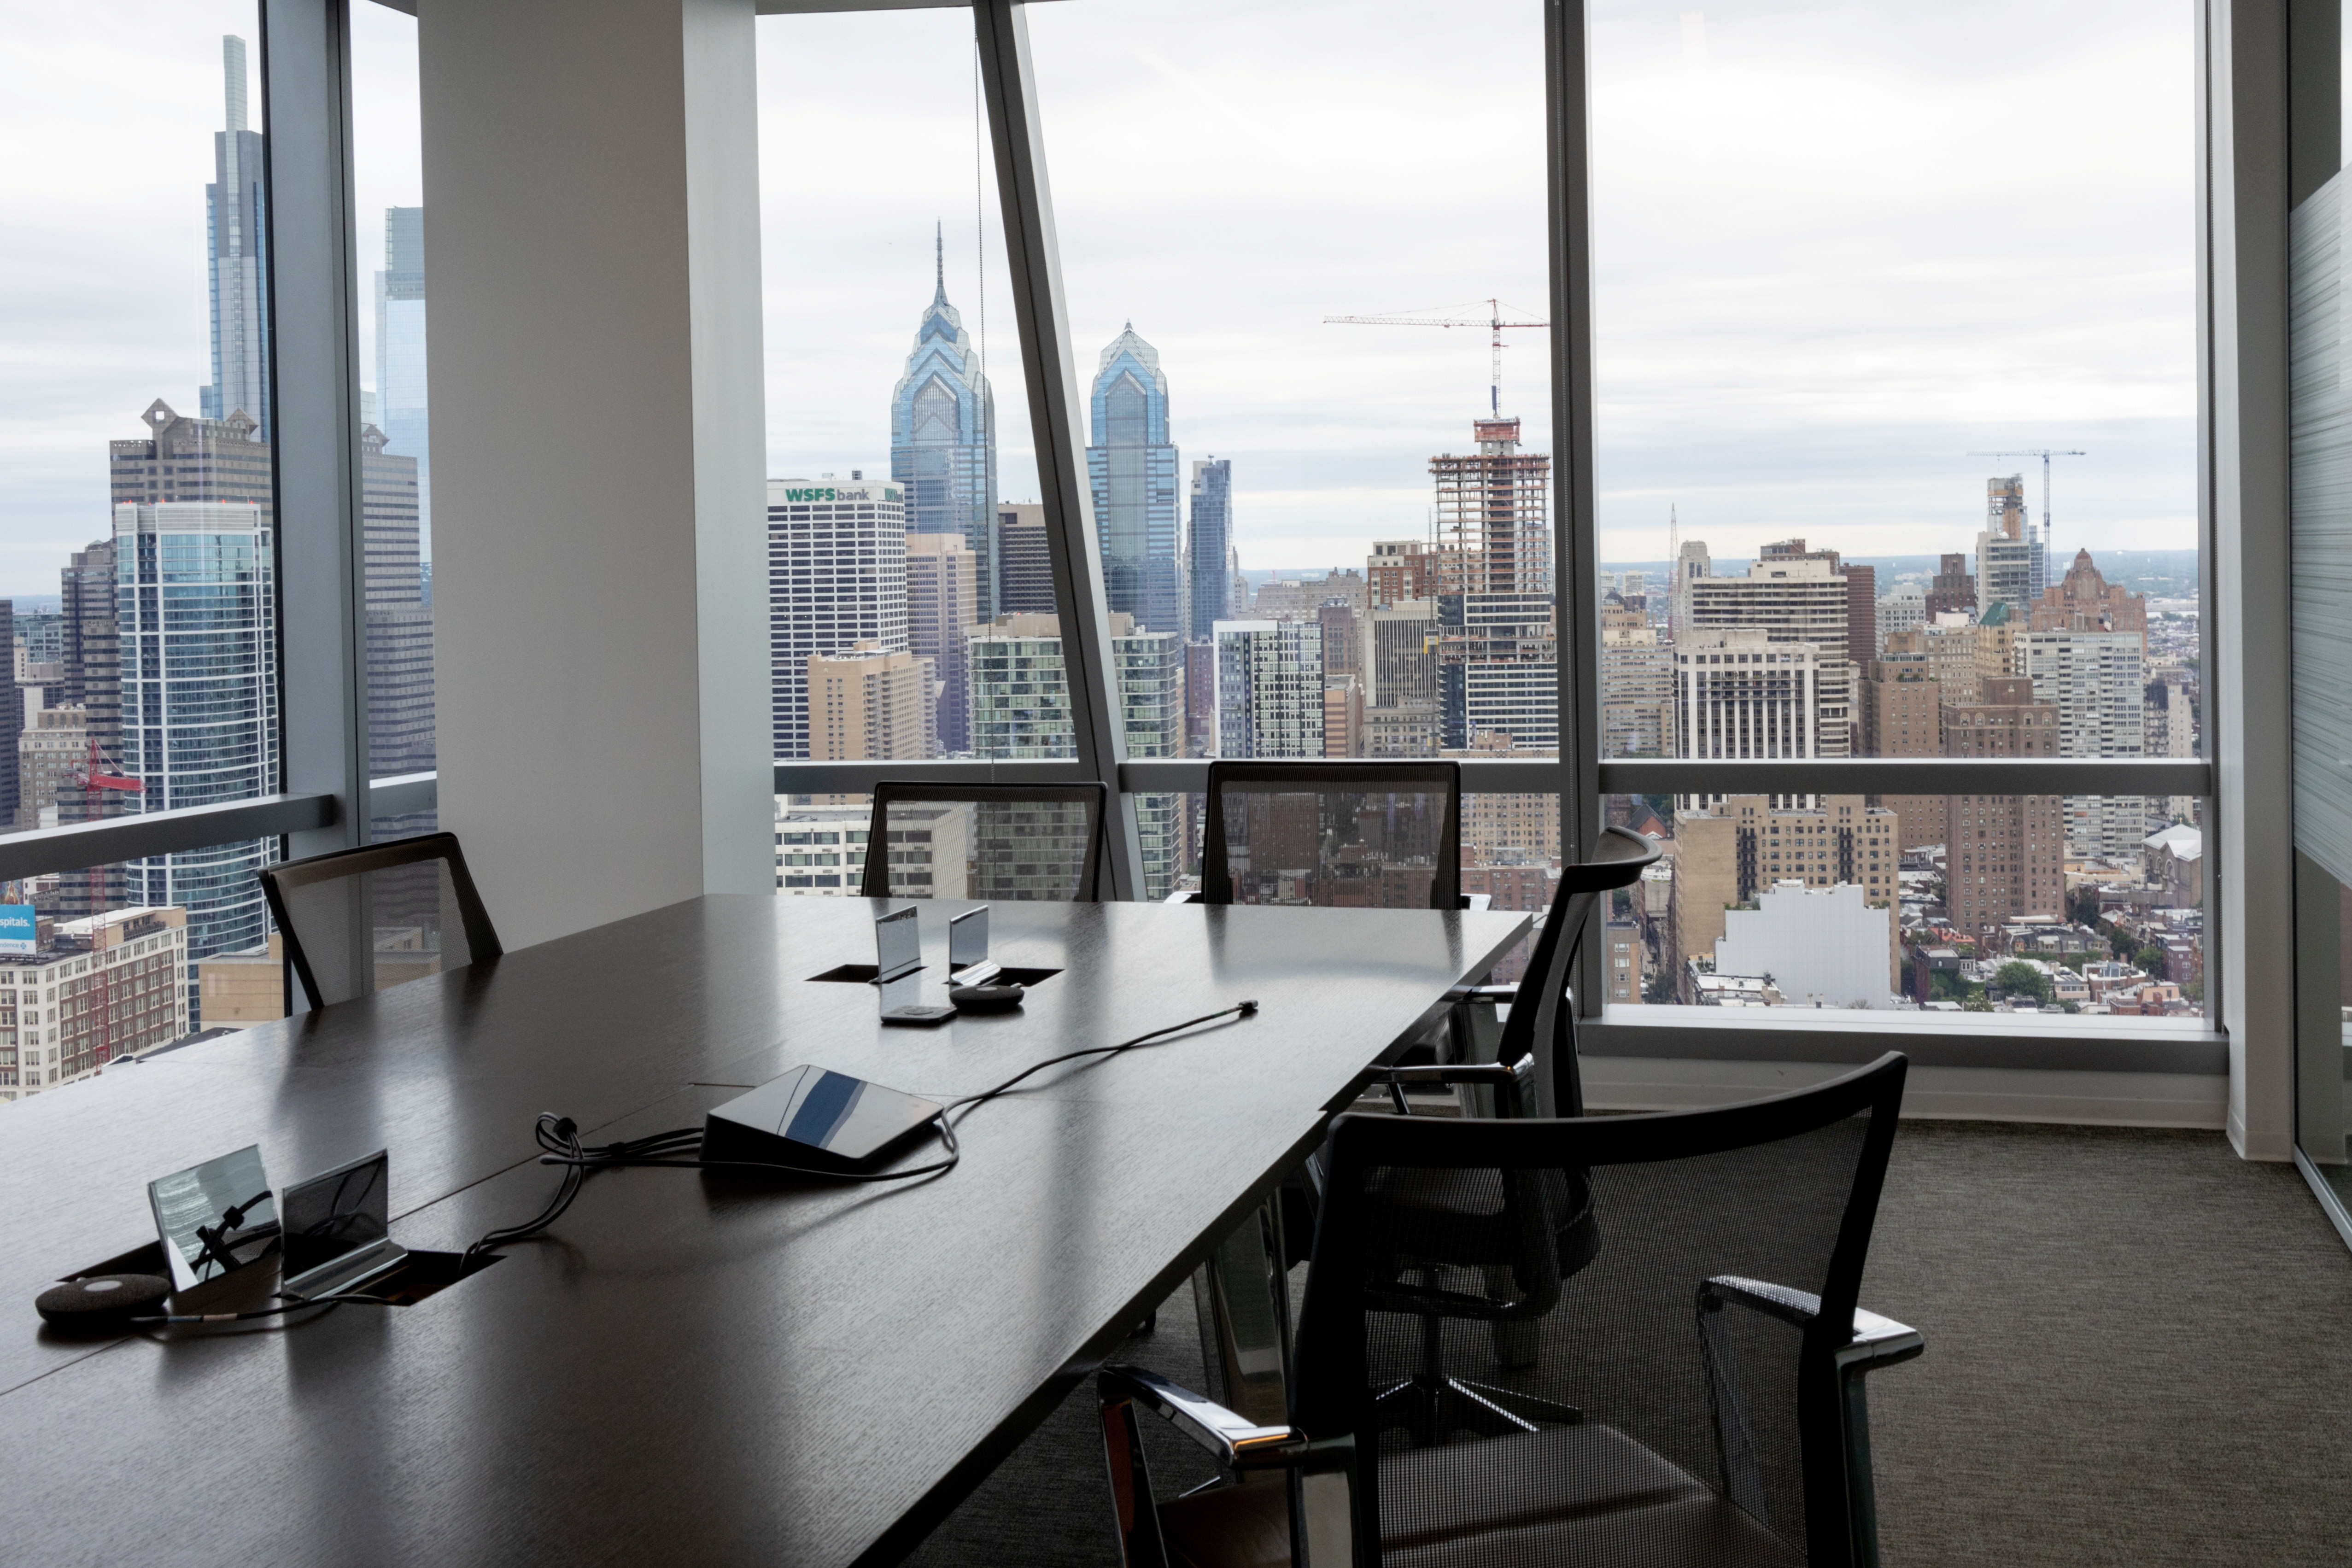 An empty conference room is seen against a city sky drop representing the switch to remote working by many companies